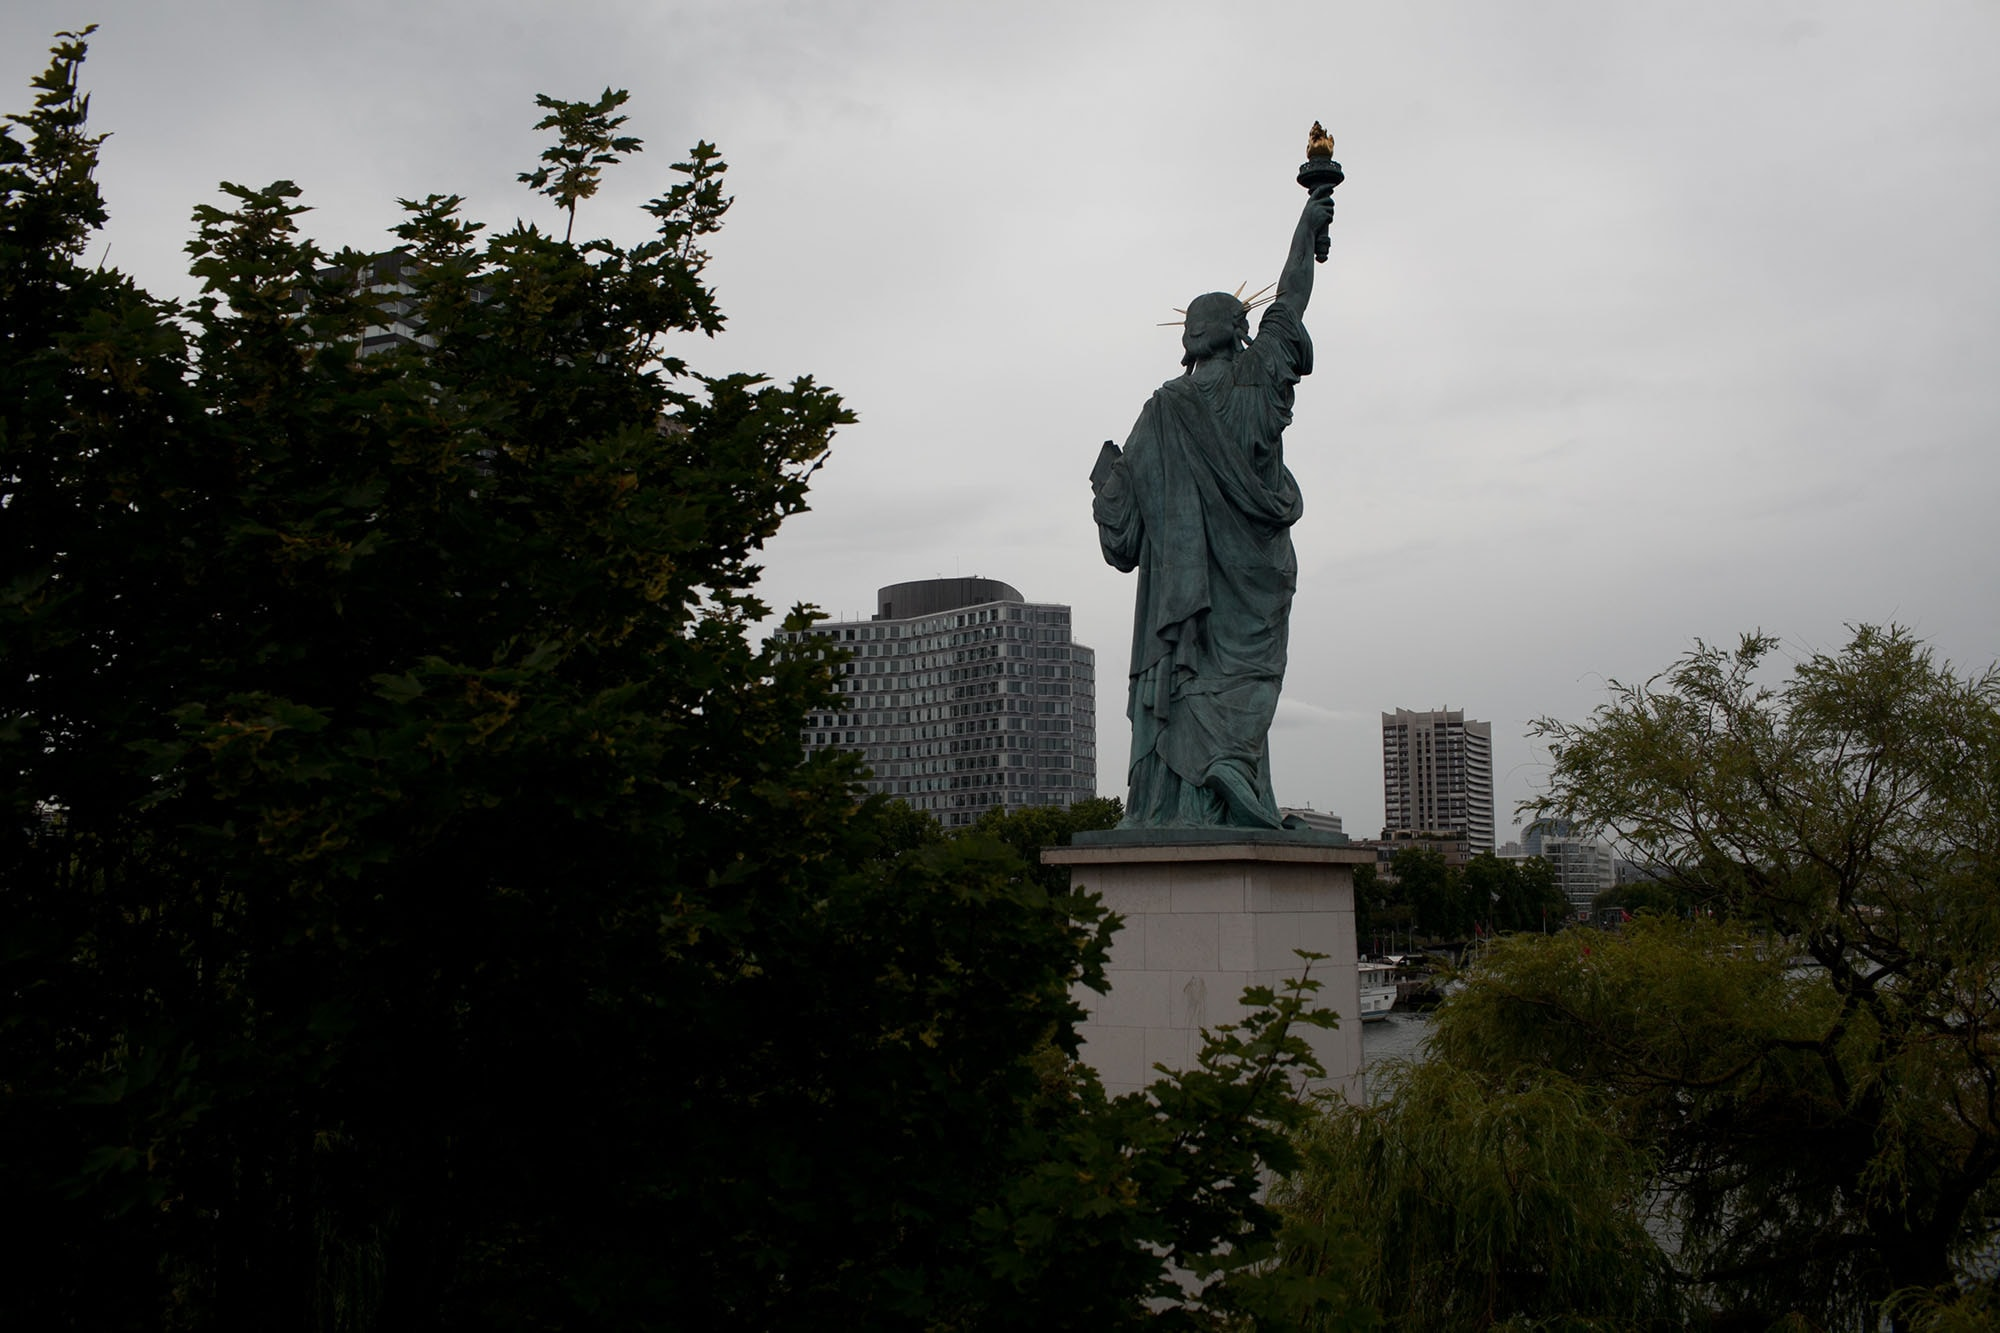 Statue of Liberty in Paris | I love Paris when it drizzles.